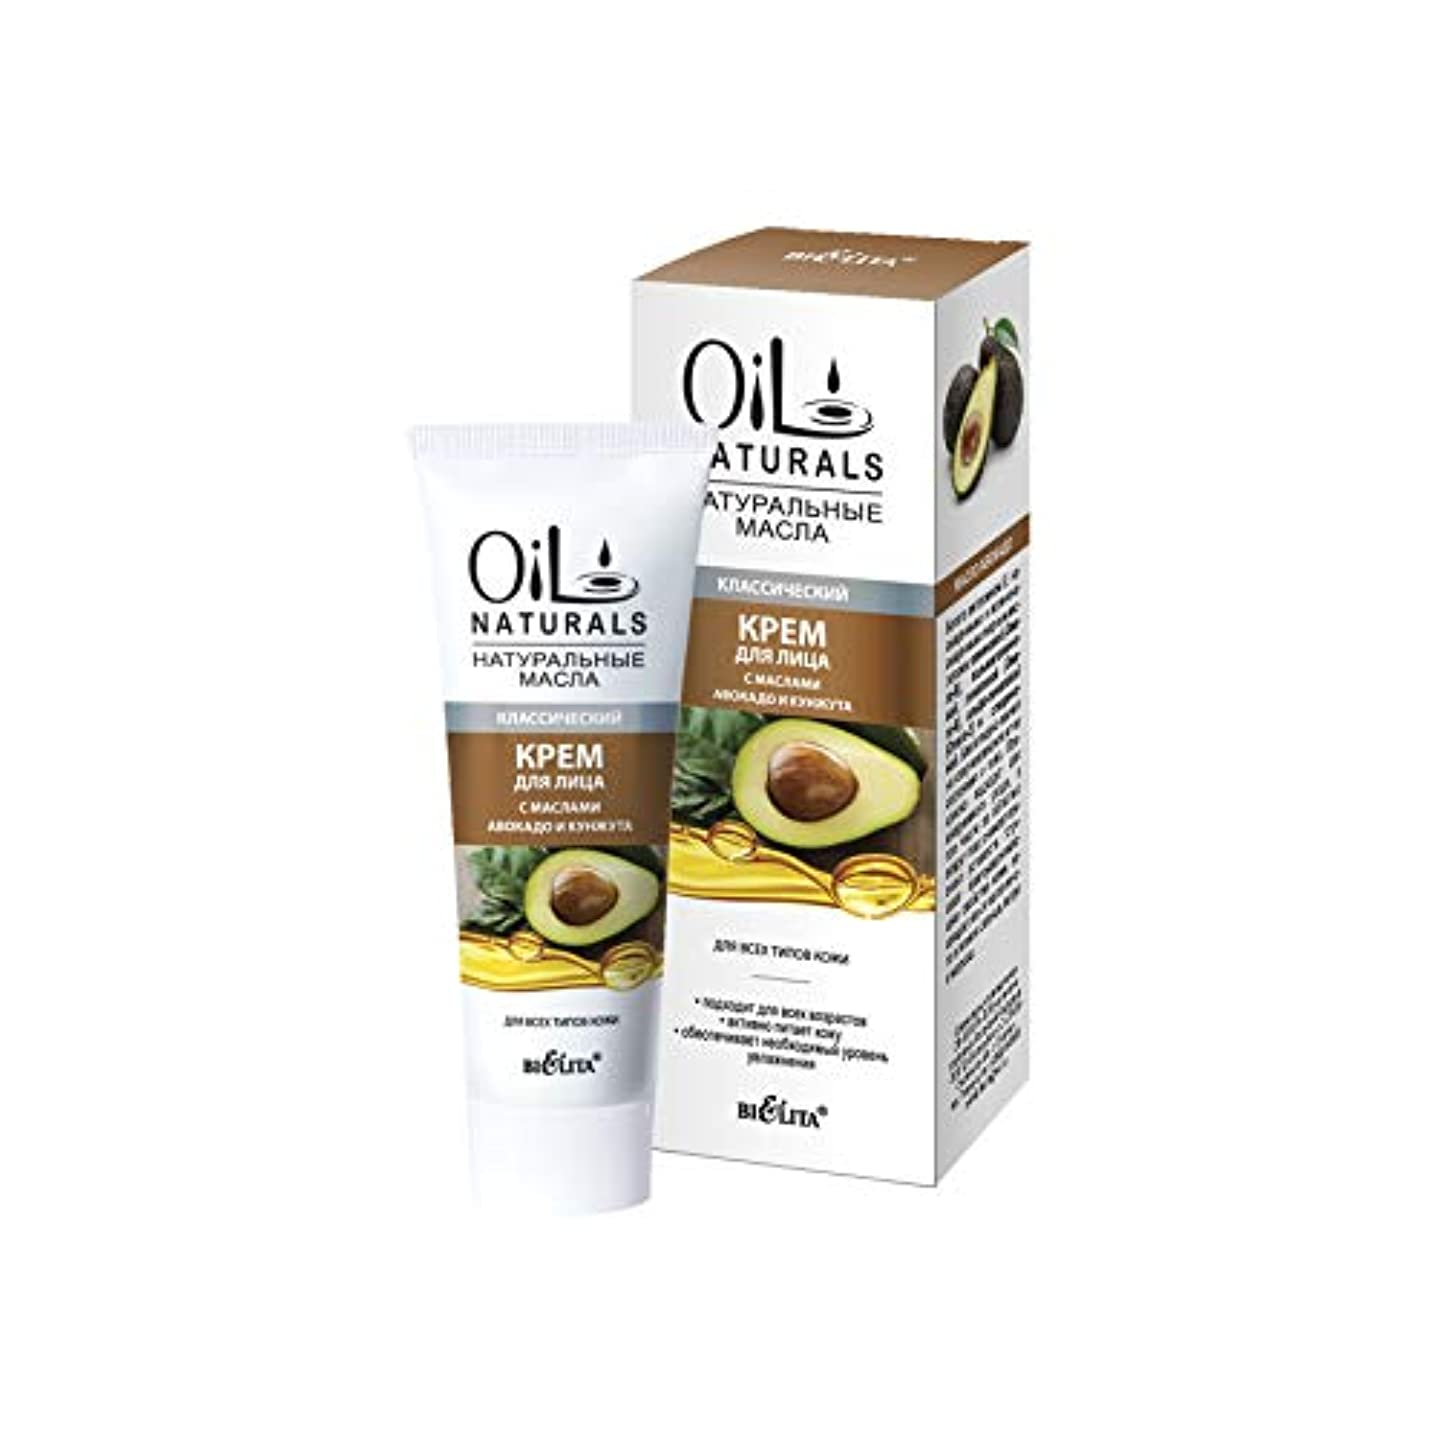 覆す樹木パトワBielita & Vitex |Oil Naturals Line | Classic Moisturizing Face Cream, for All Skin Types, 50 ml | Avocado Oil,...